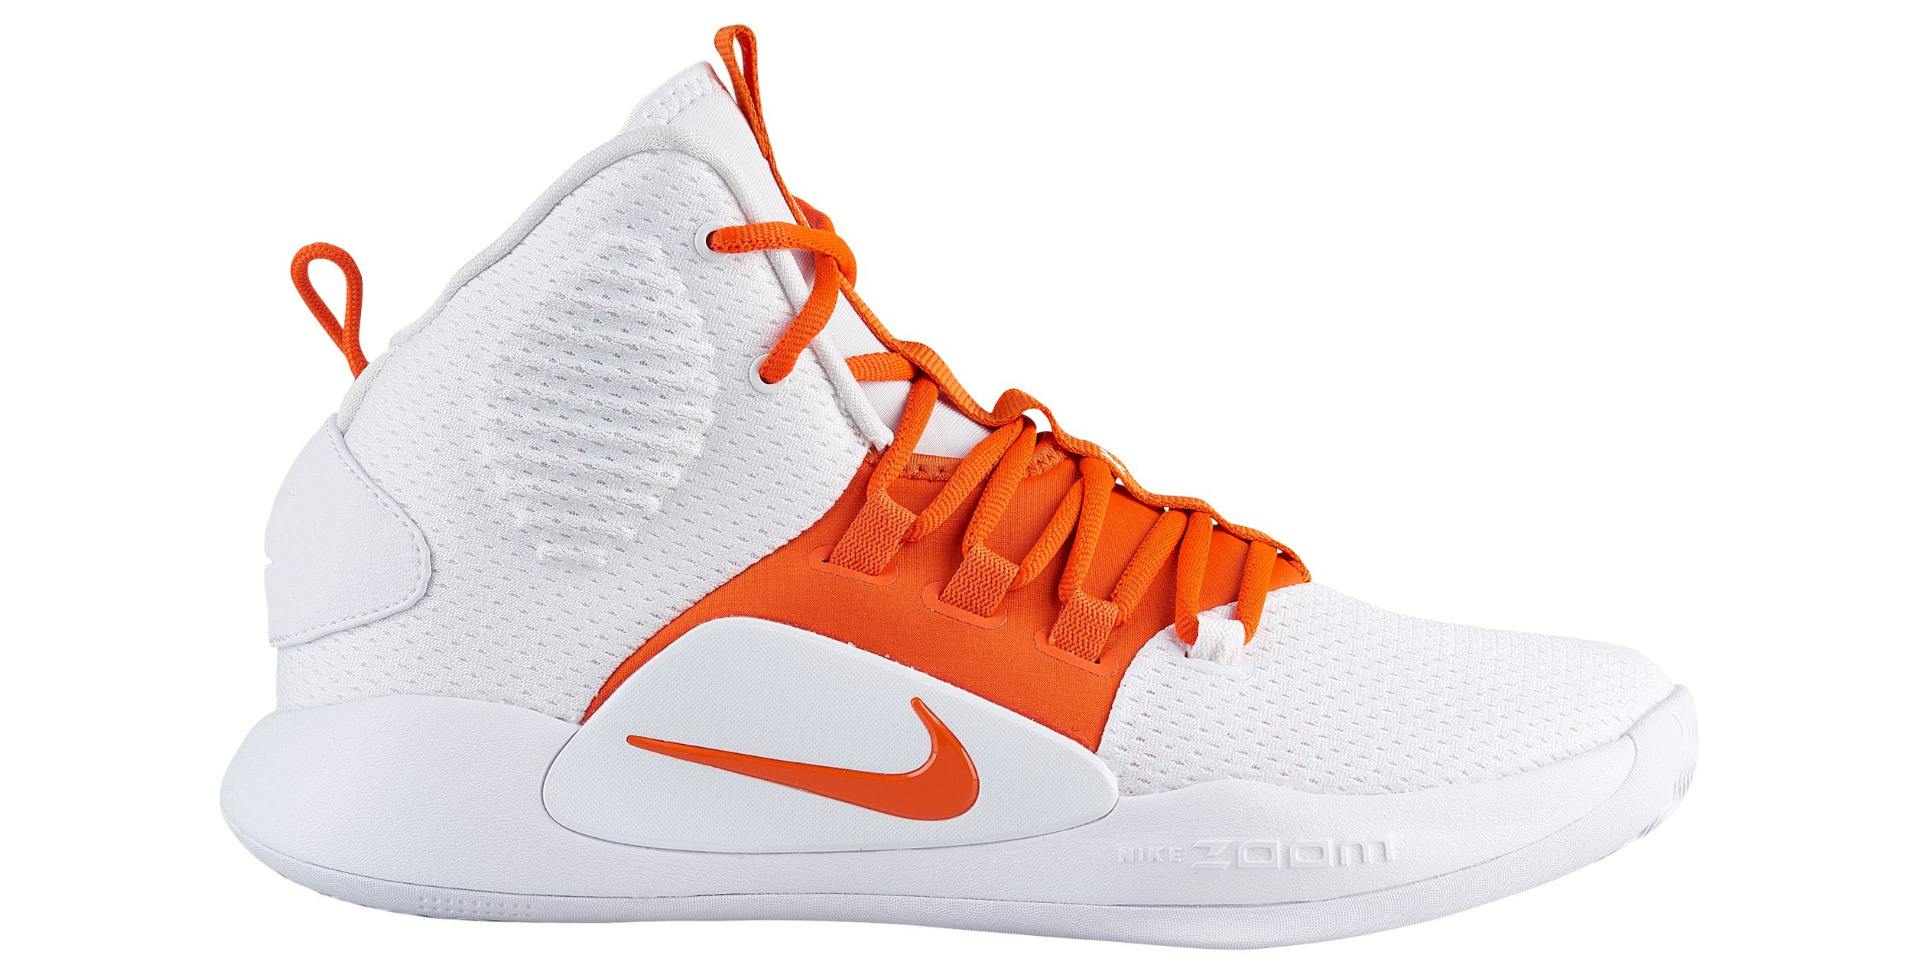 The Nike Hyperdunk X Has Arrived in